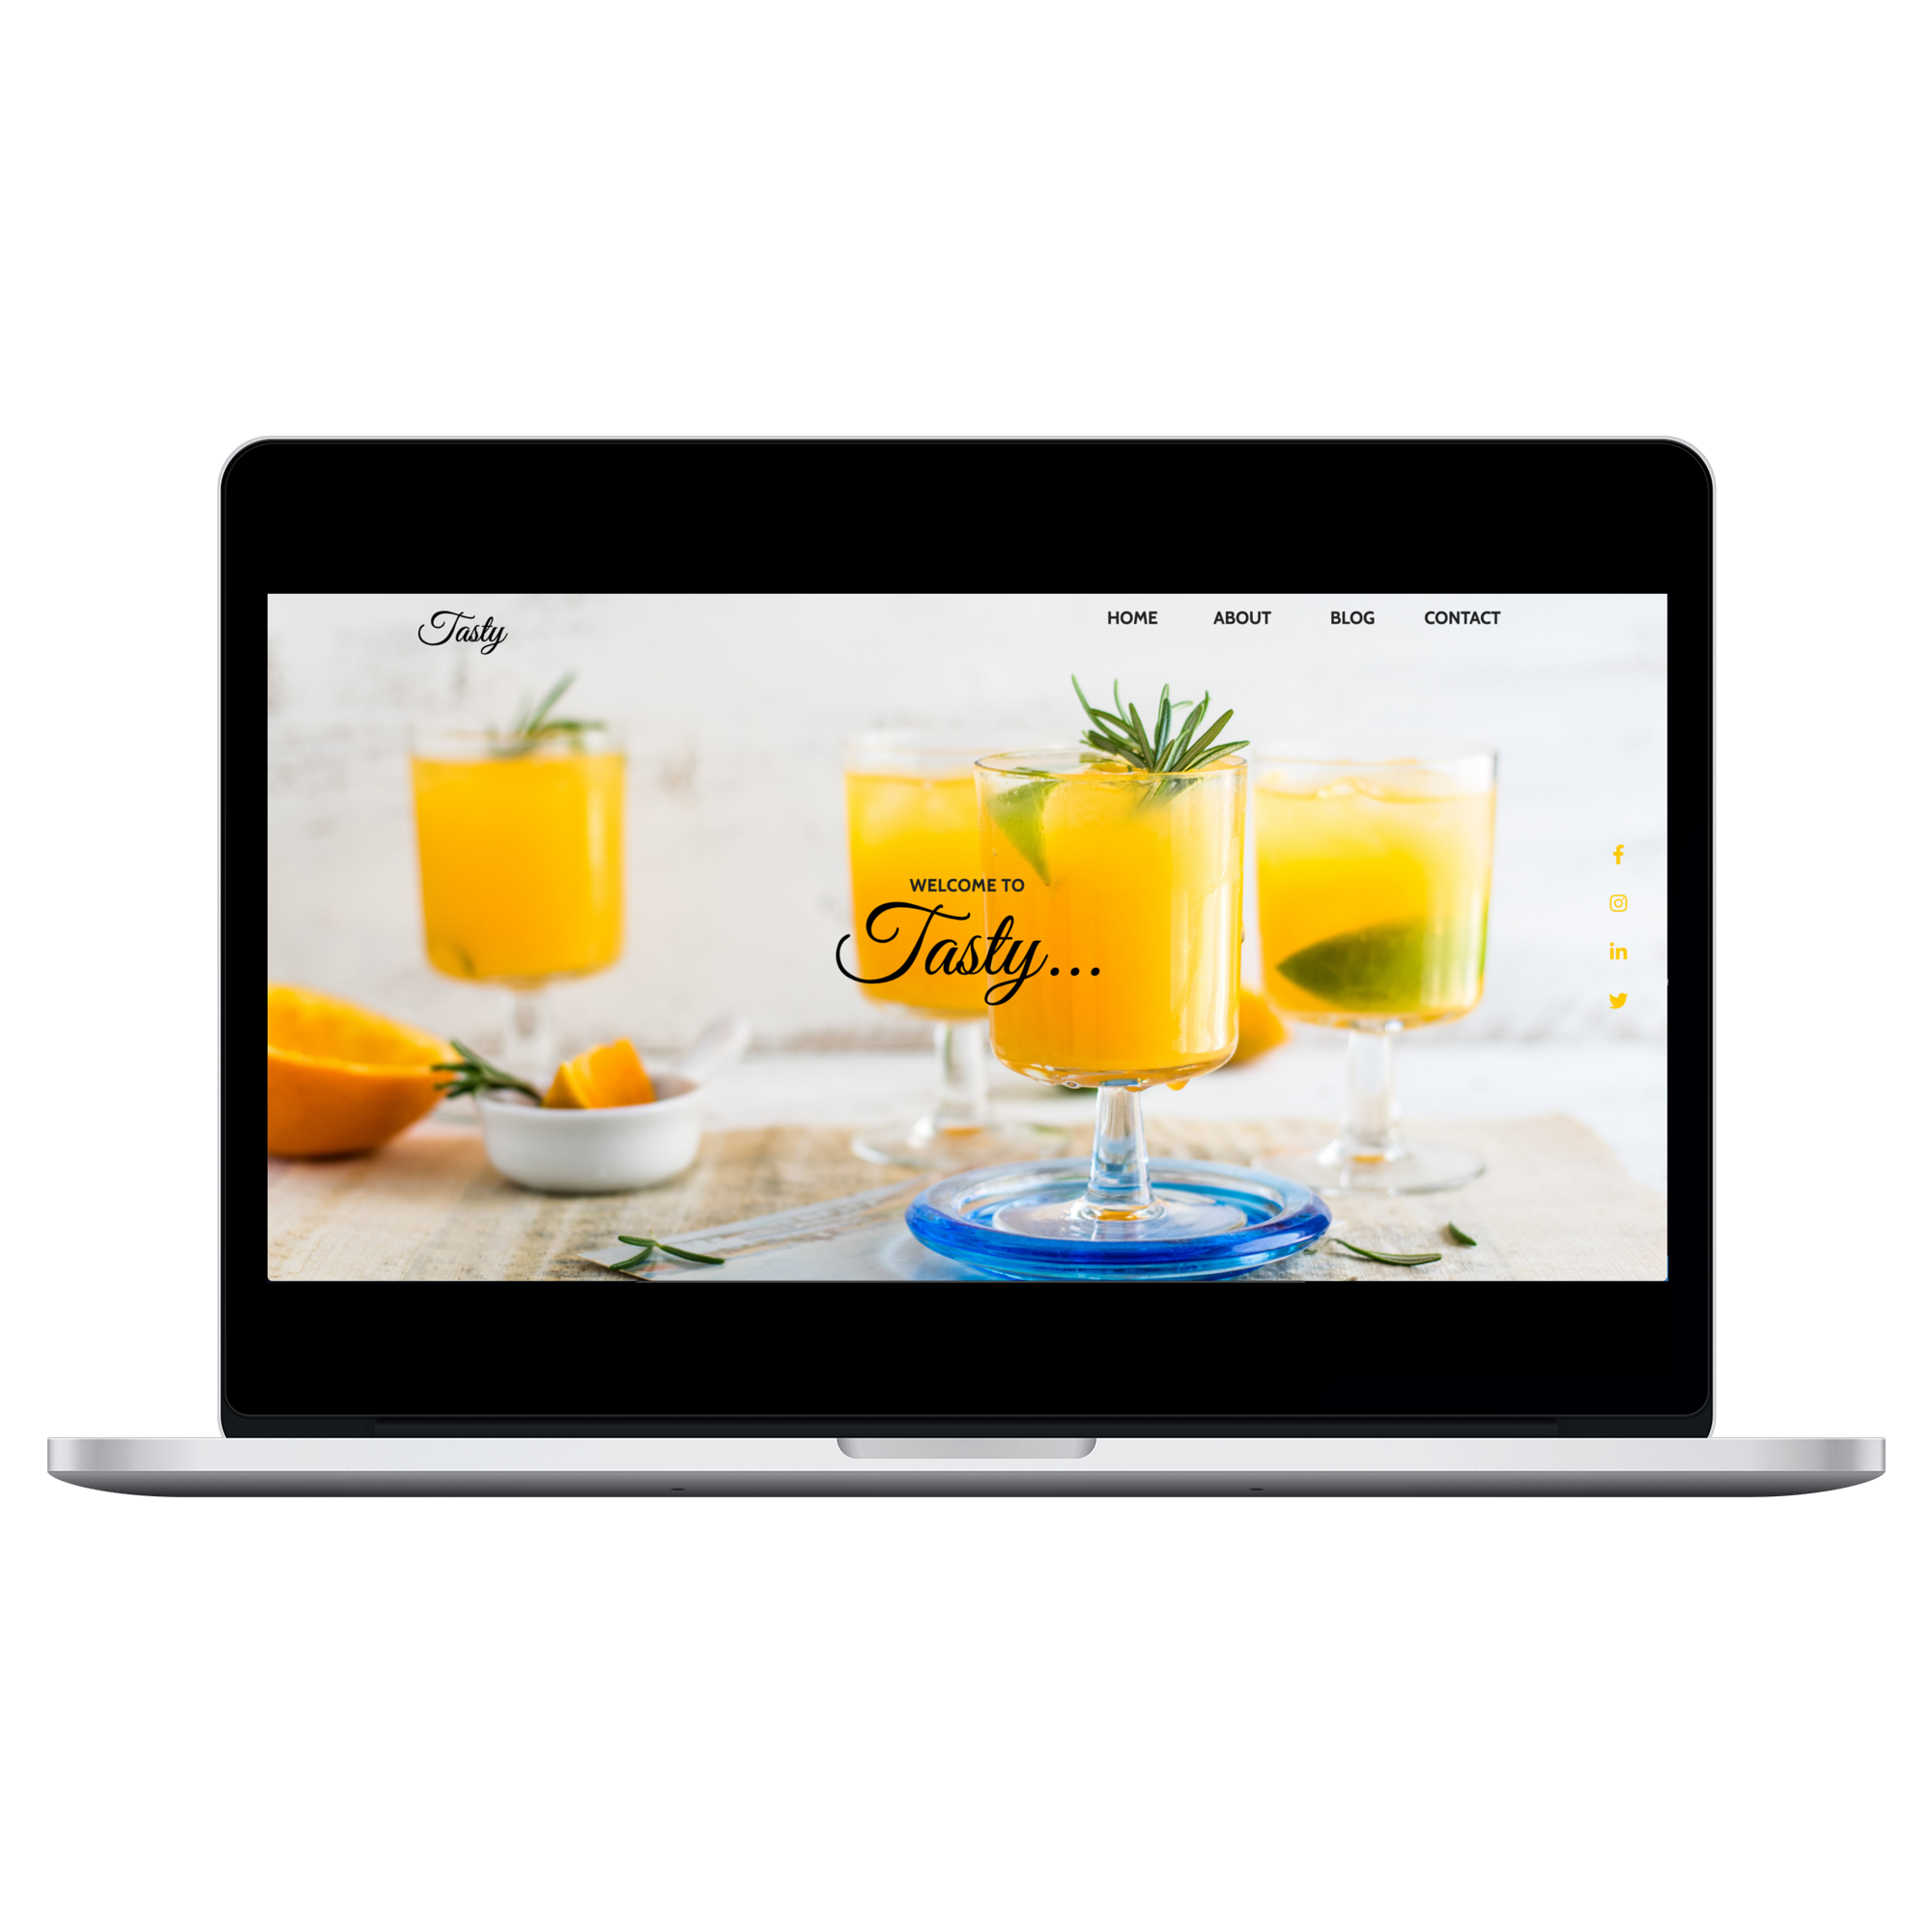 Mockup of Tasty on 15 inch Macbook Pro